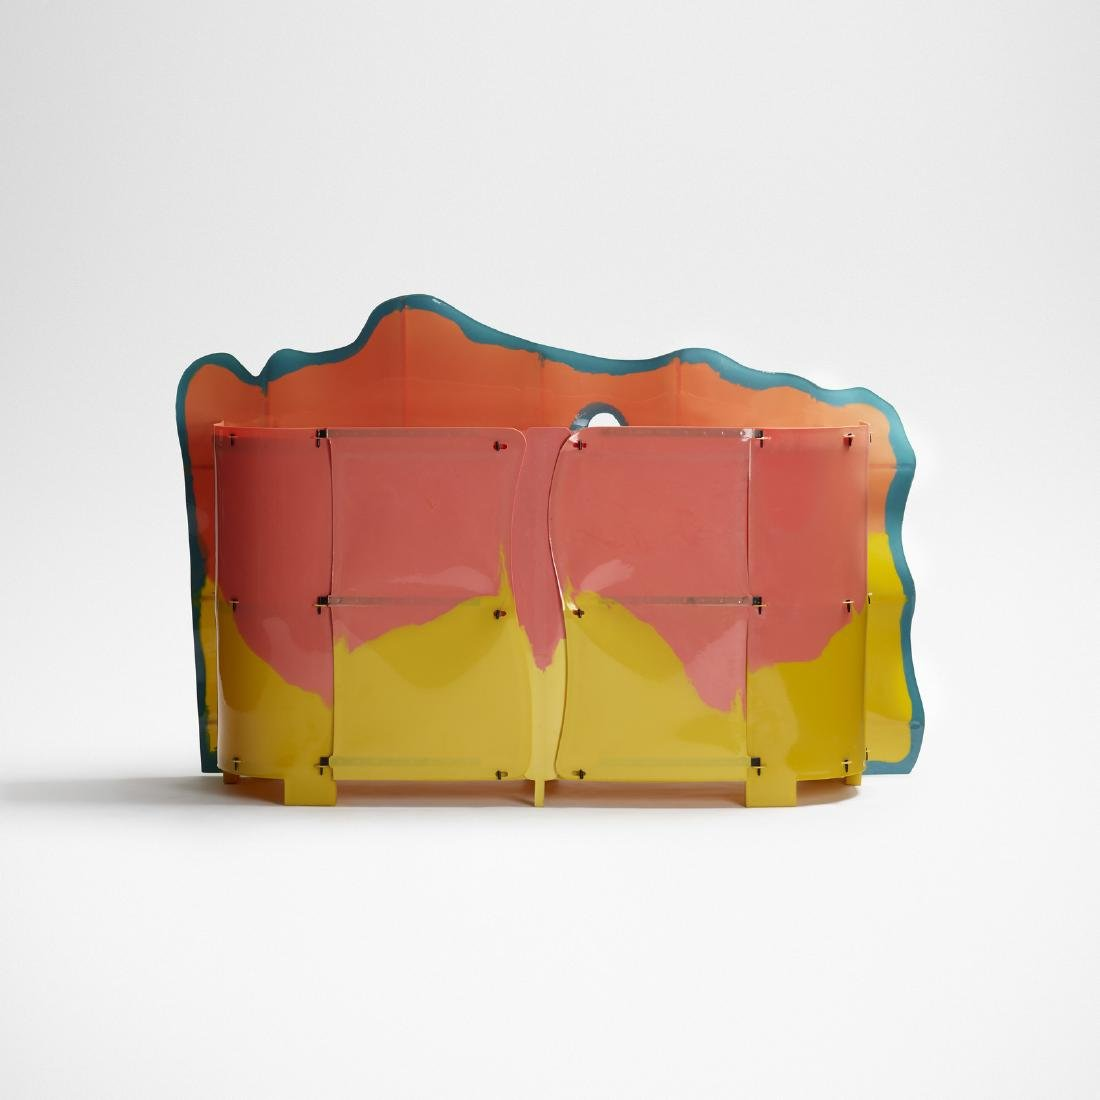 Gaetano Pesce, Nobody's Perfect cabinet